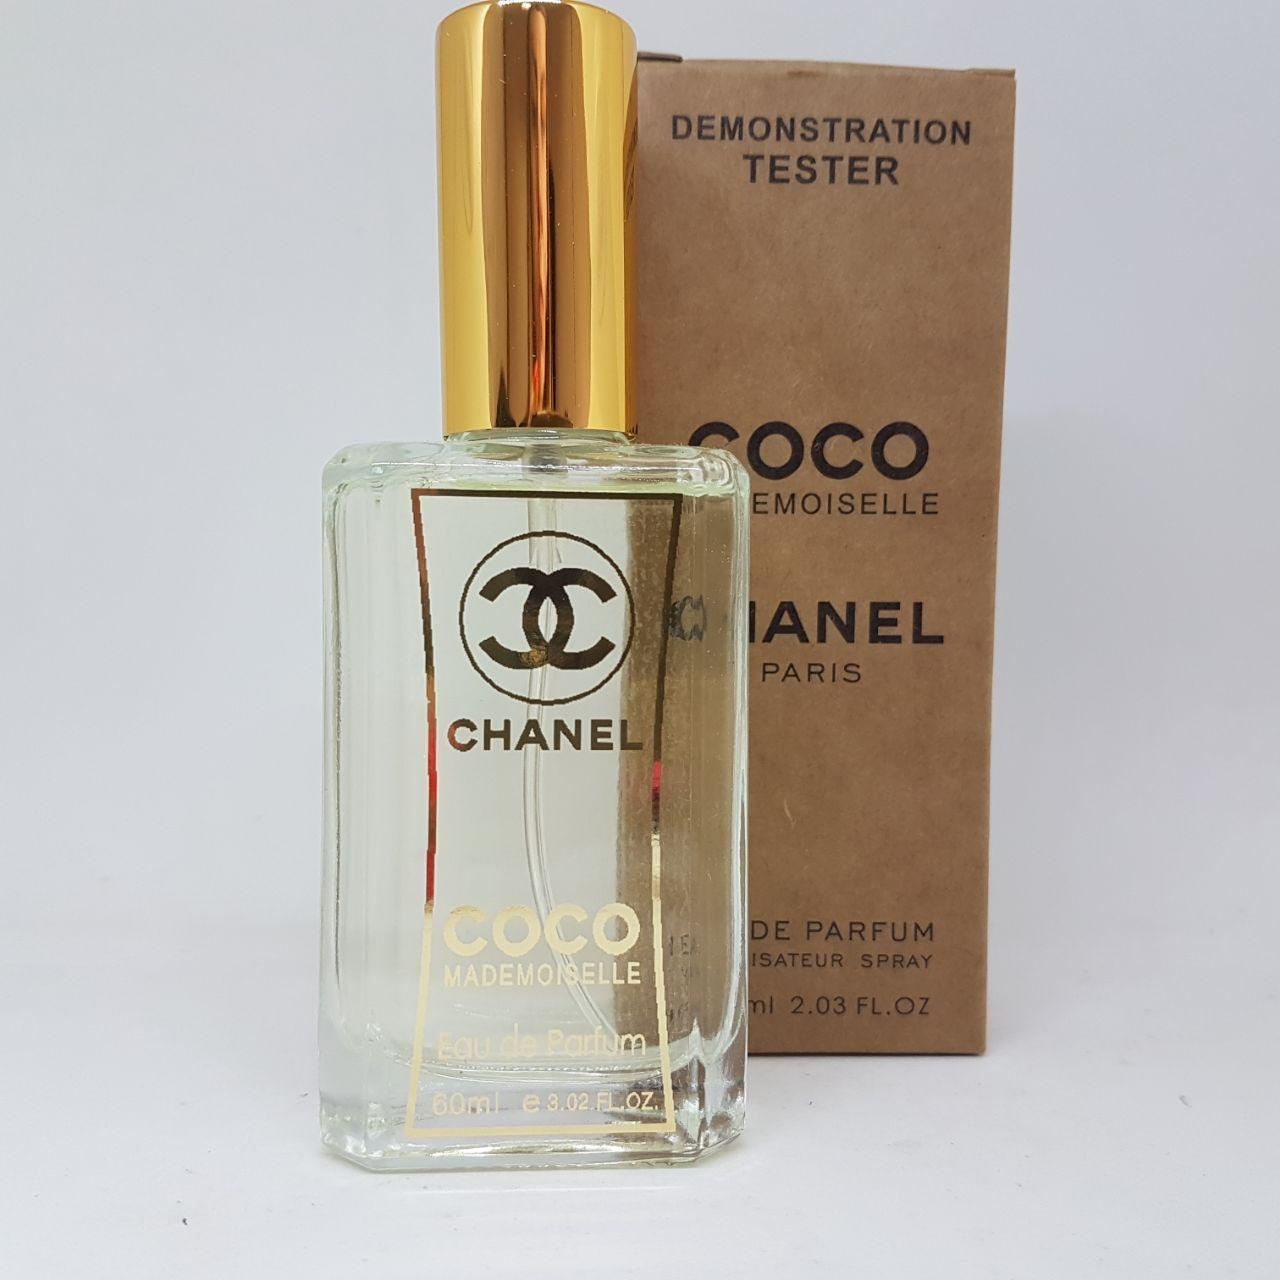 Chanel Coco Mademoiselle - Brown Tester 60ml